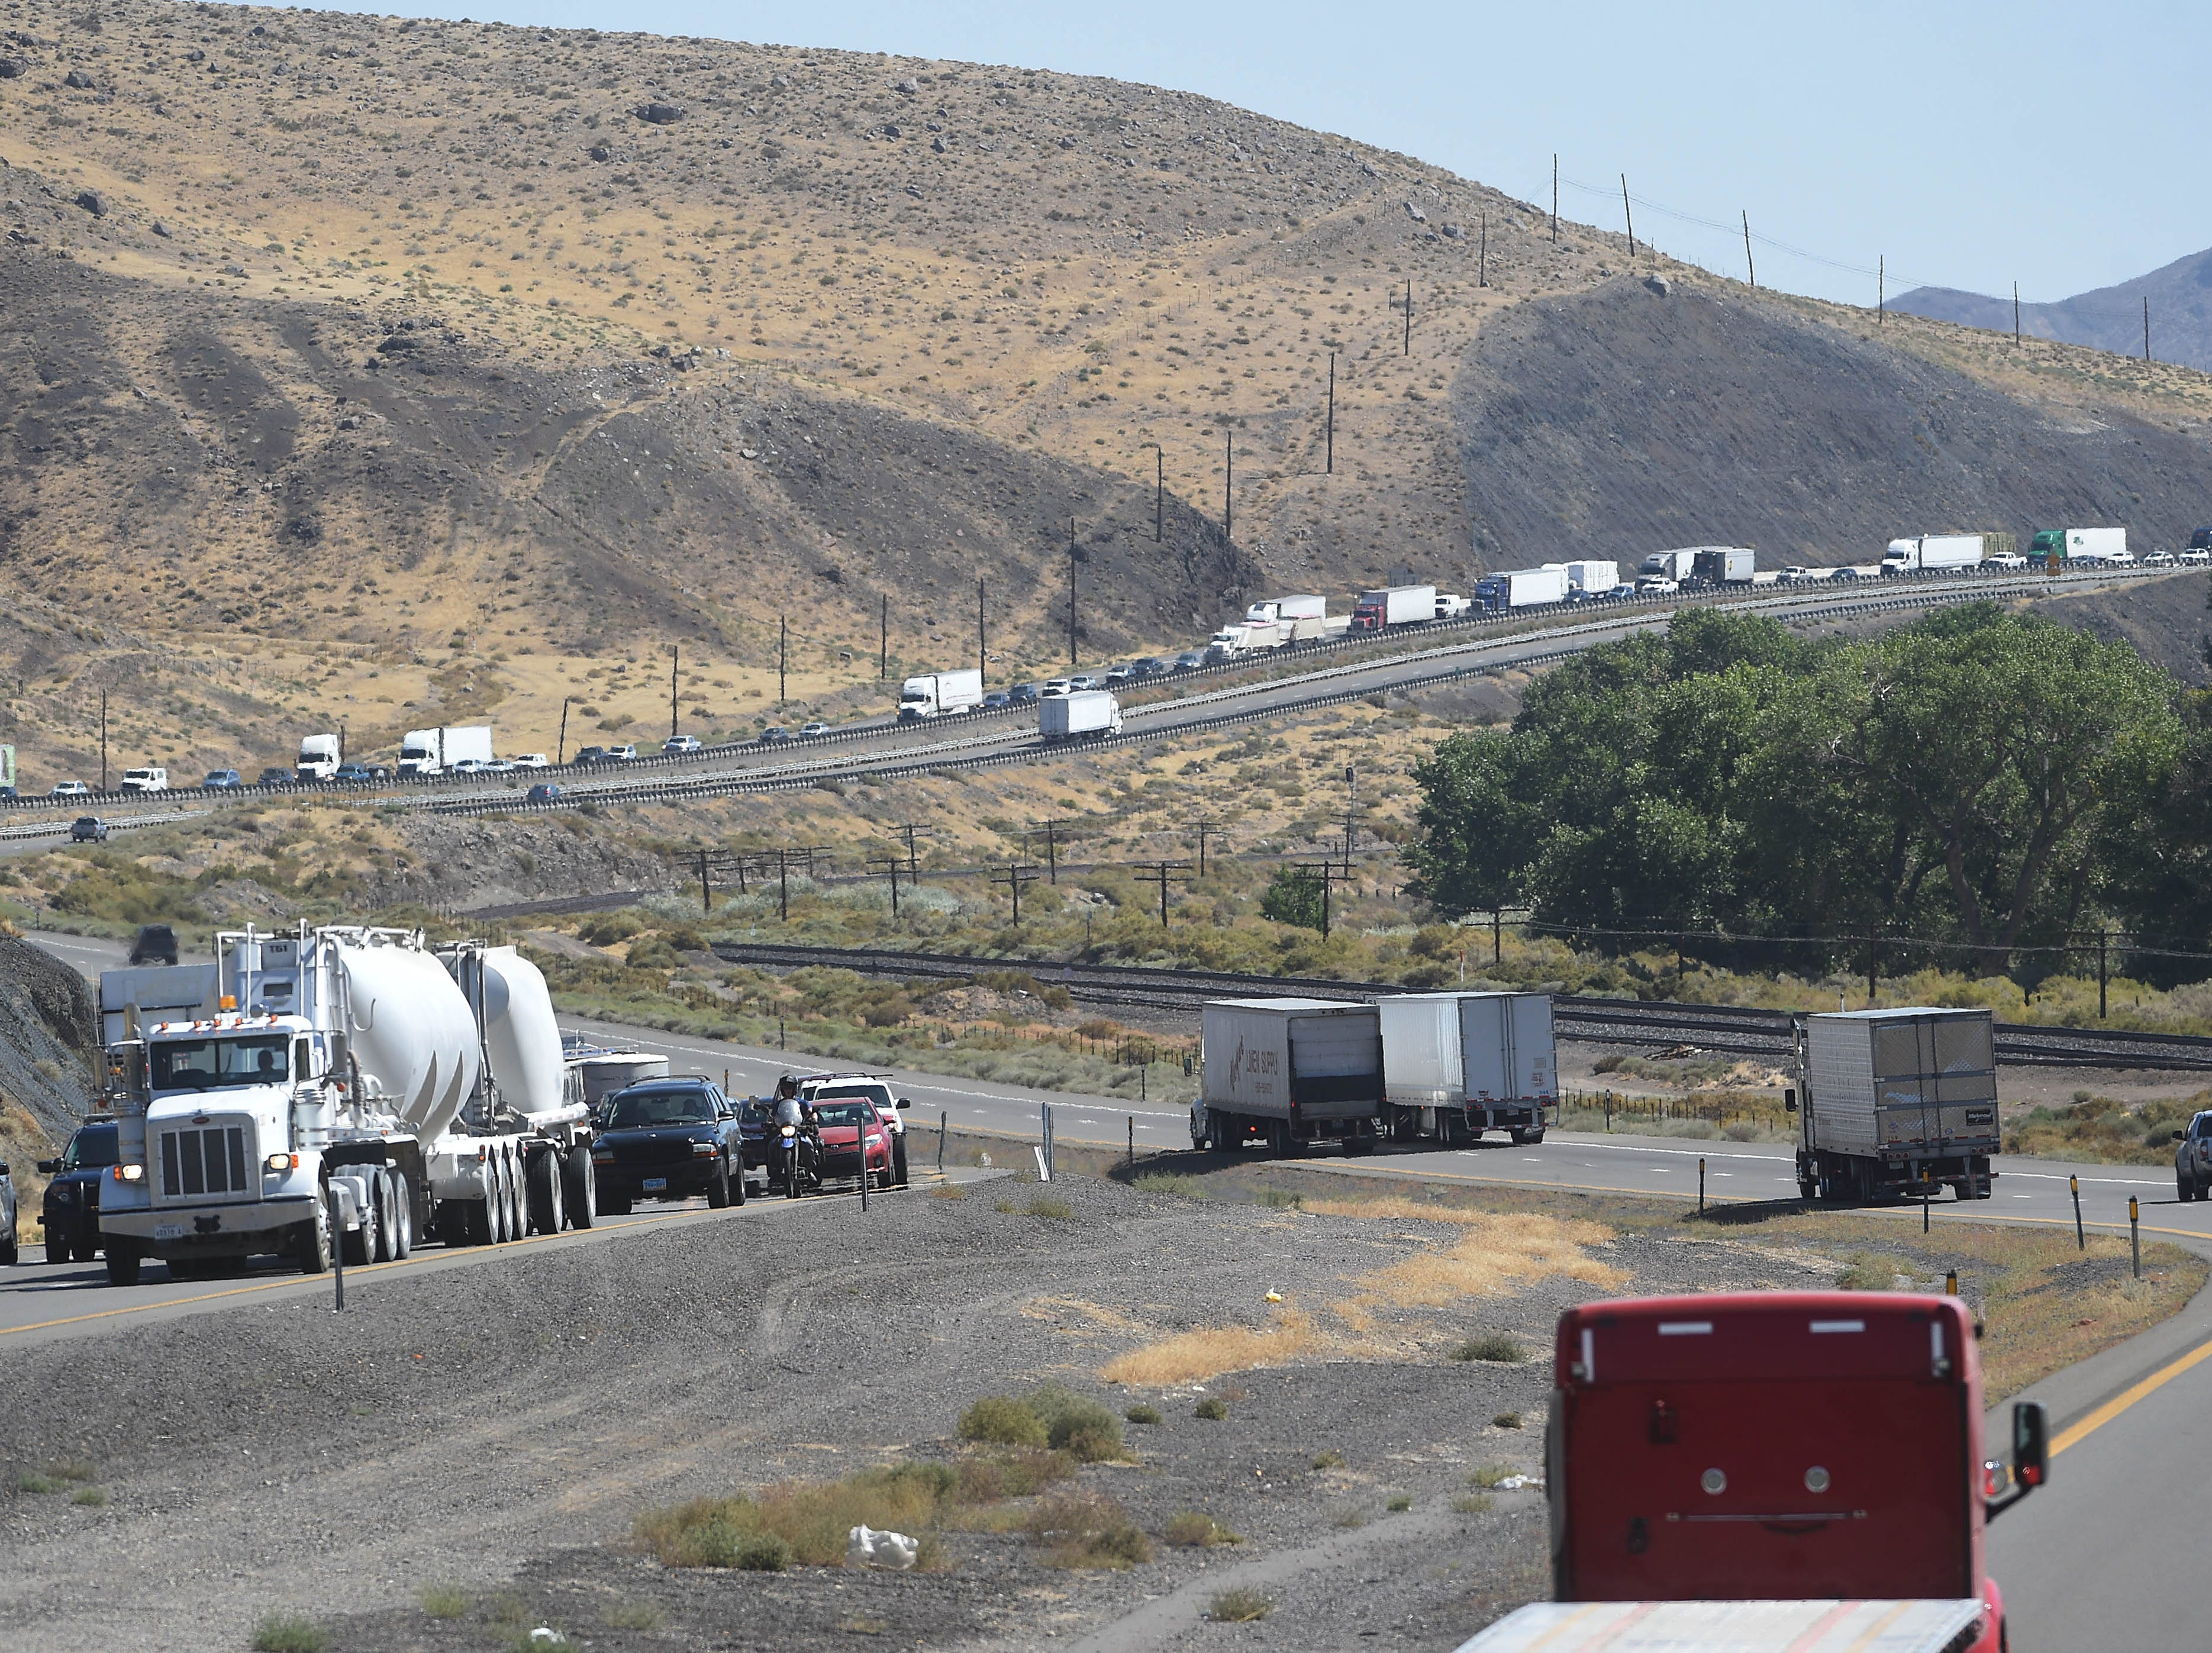 Traffic is seen backed up on west bound I-80 next to Derby Dam due to a roadside brush fire on Sept. 11, 2018.